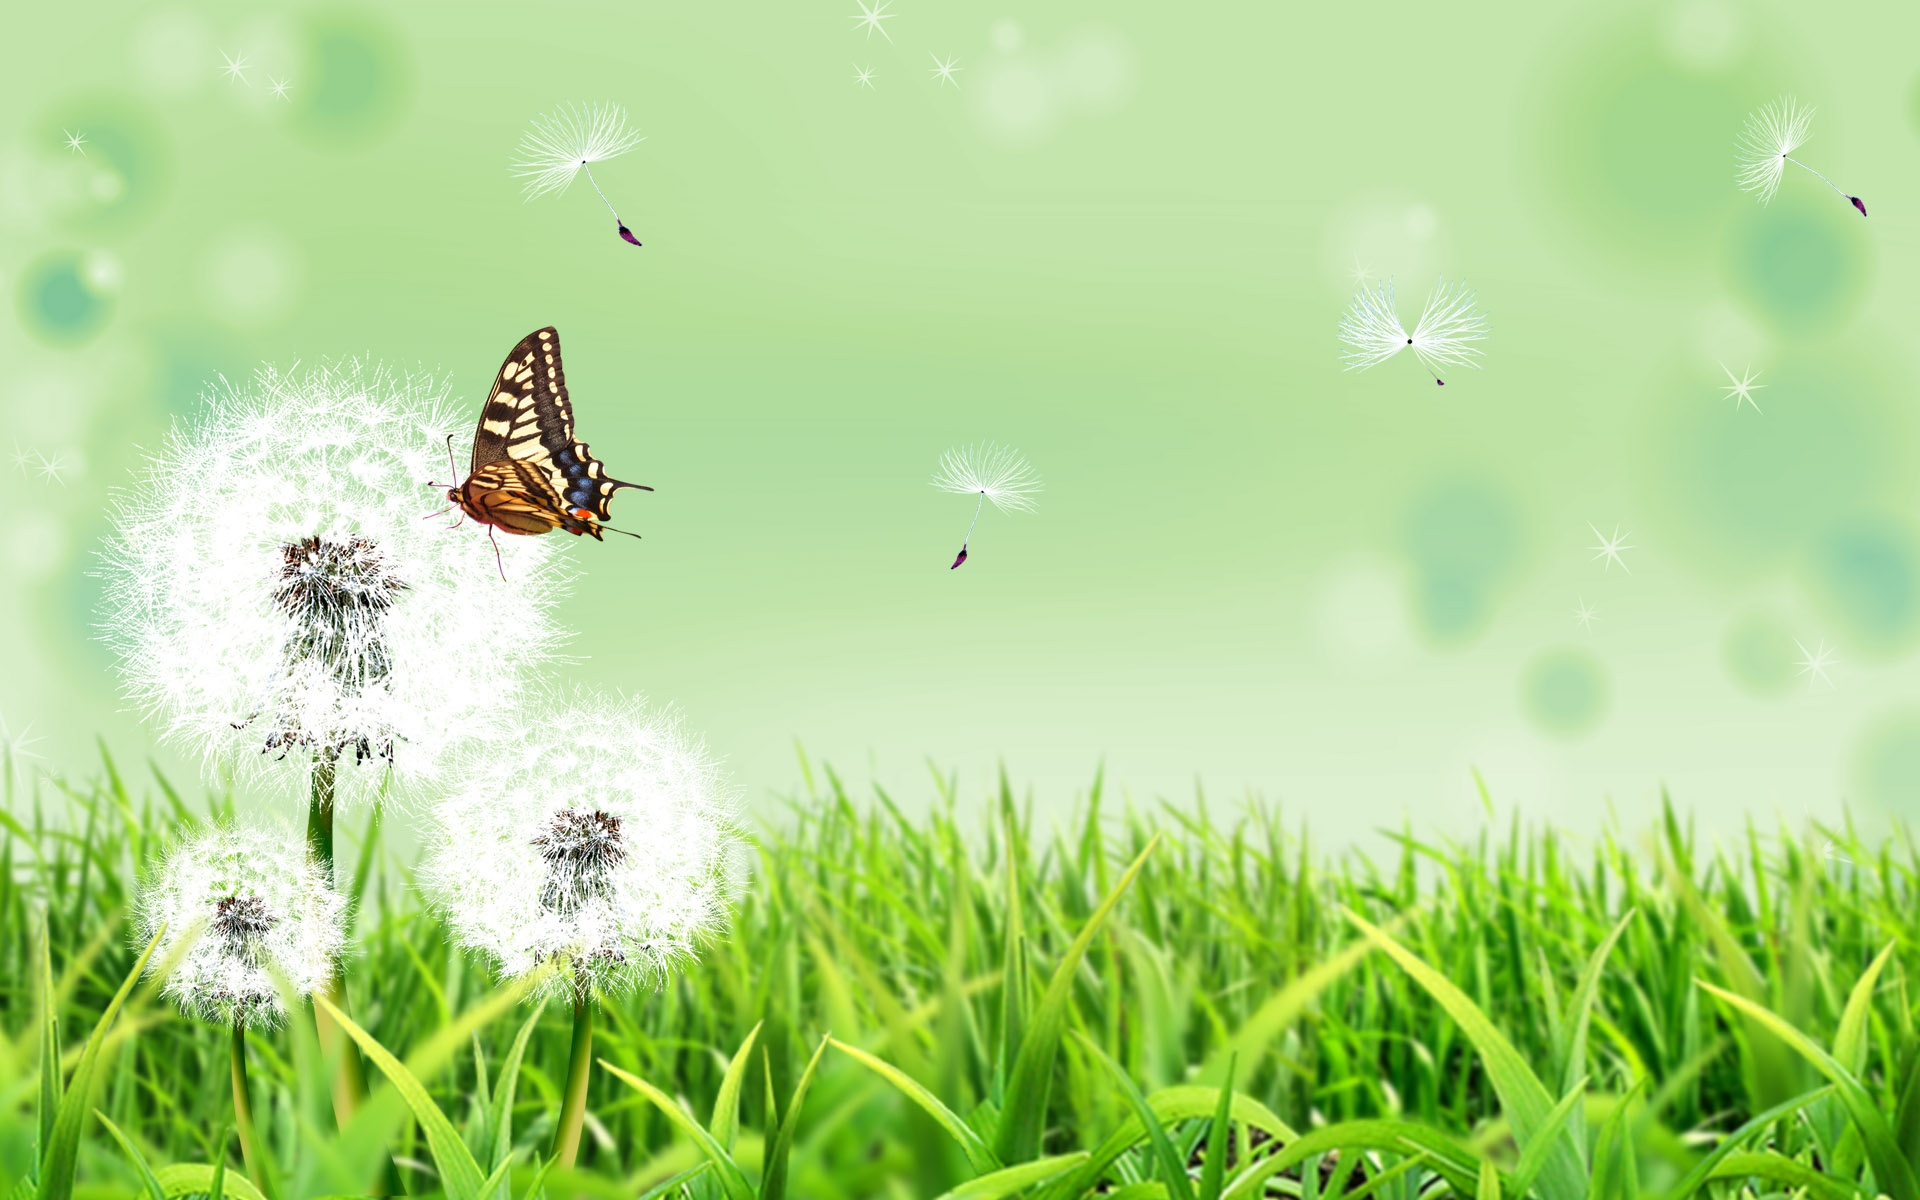 downloadfiles_wallpapers_1920_1200_butterfly_nature_5350